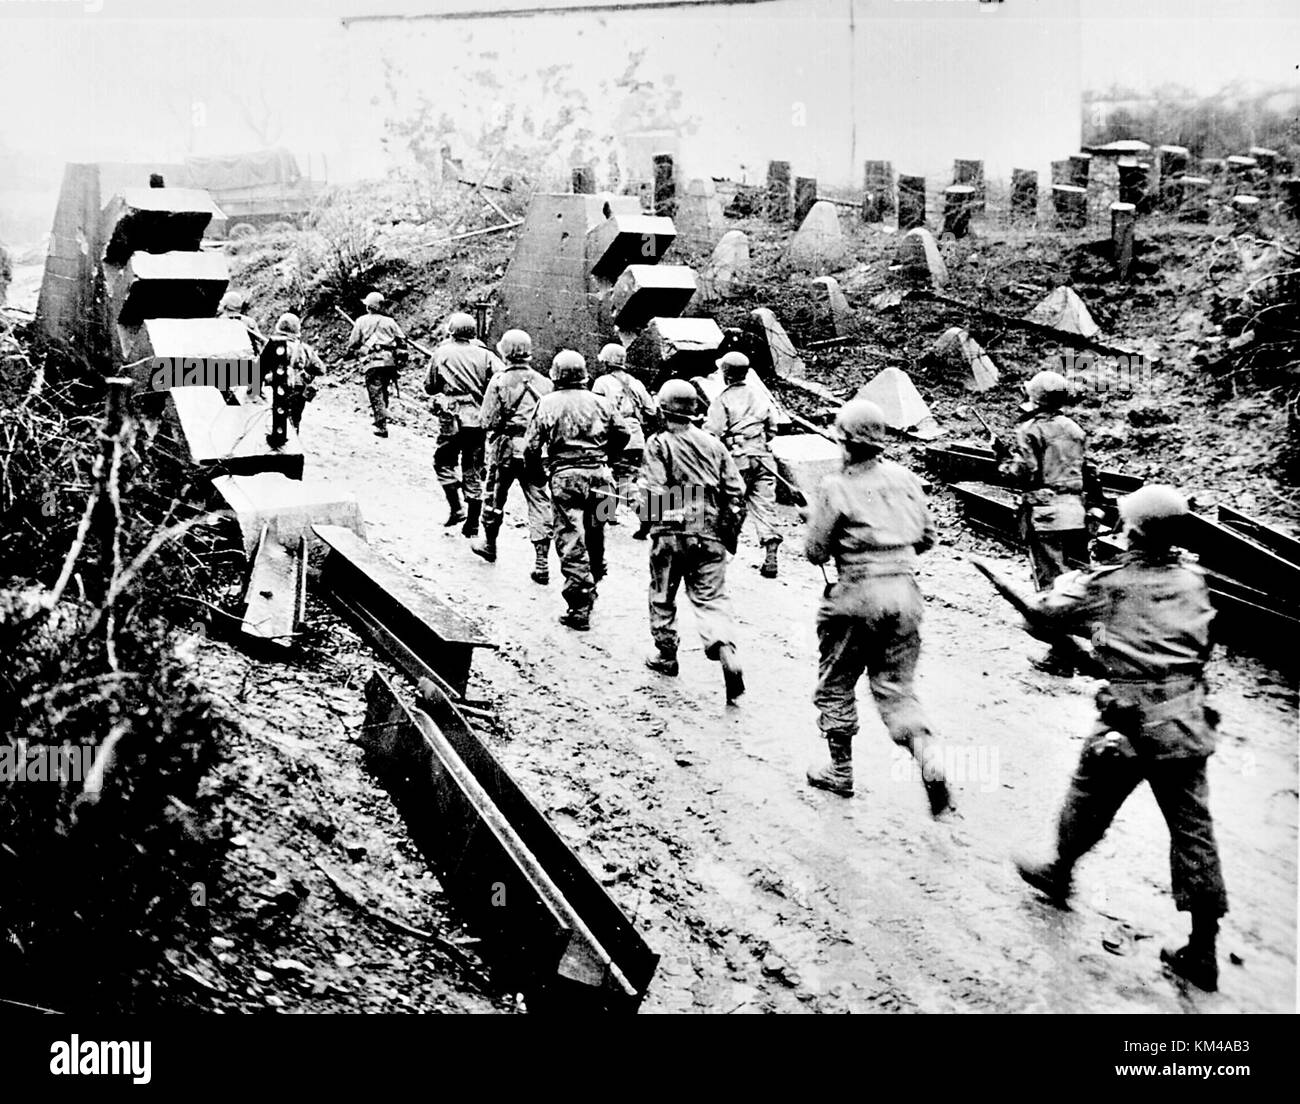 The Siegfried Line, First World War line of defensive forts and tank defences built by Germany in northern France - Stock Image